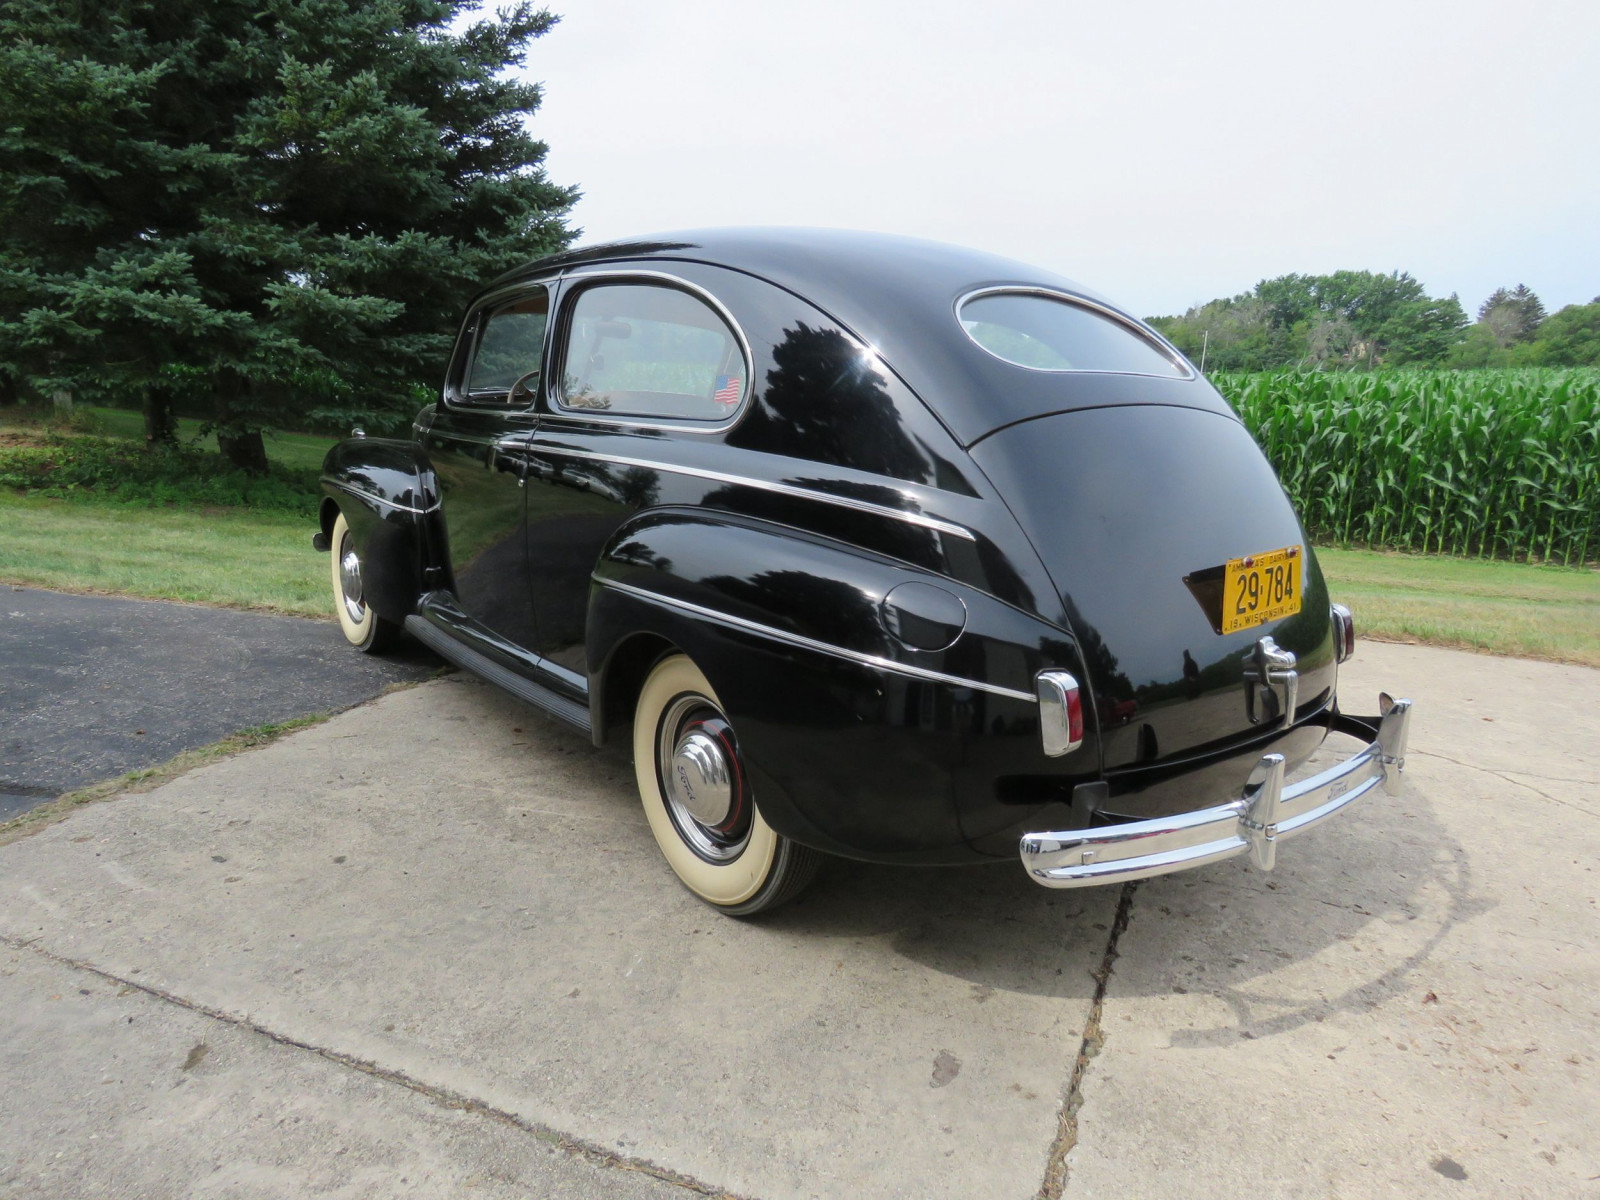 1941 Ford Super Deluxe Tudor Sedan - Image 6